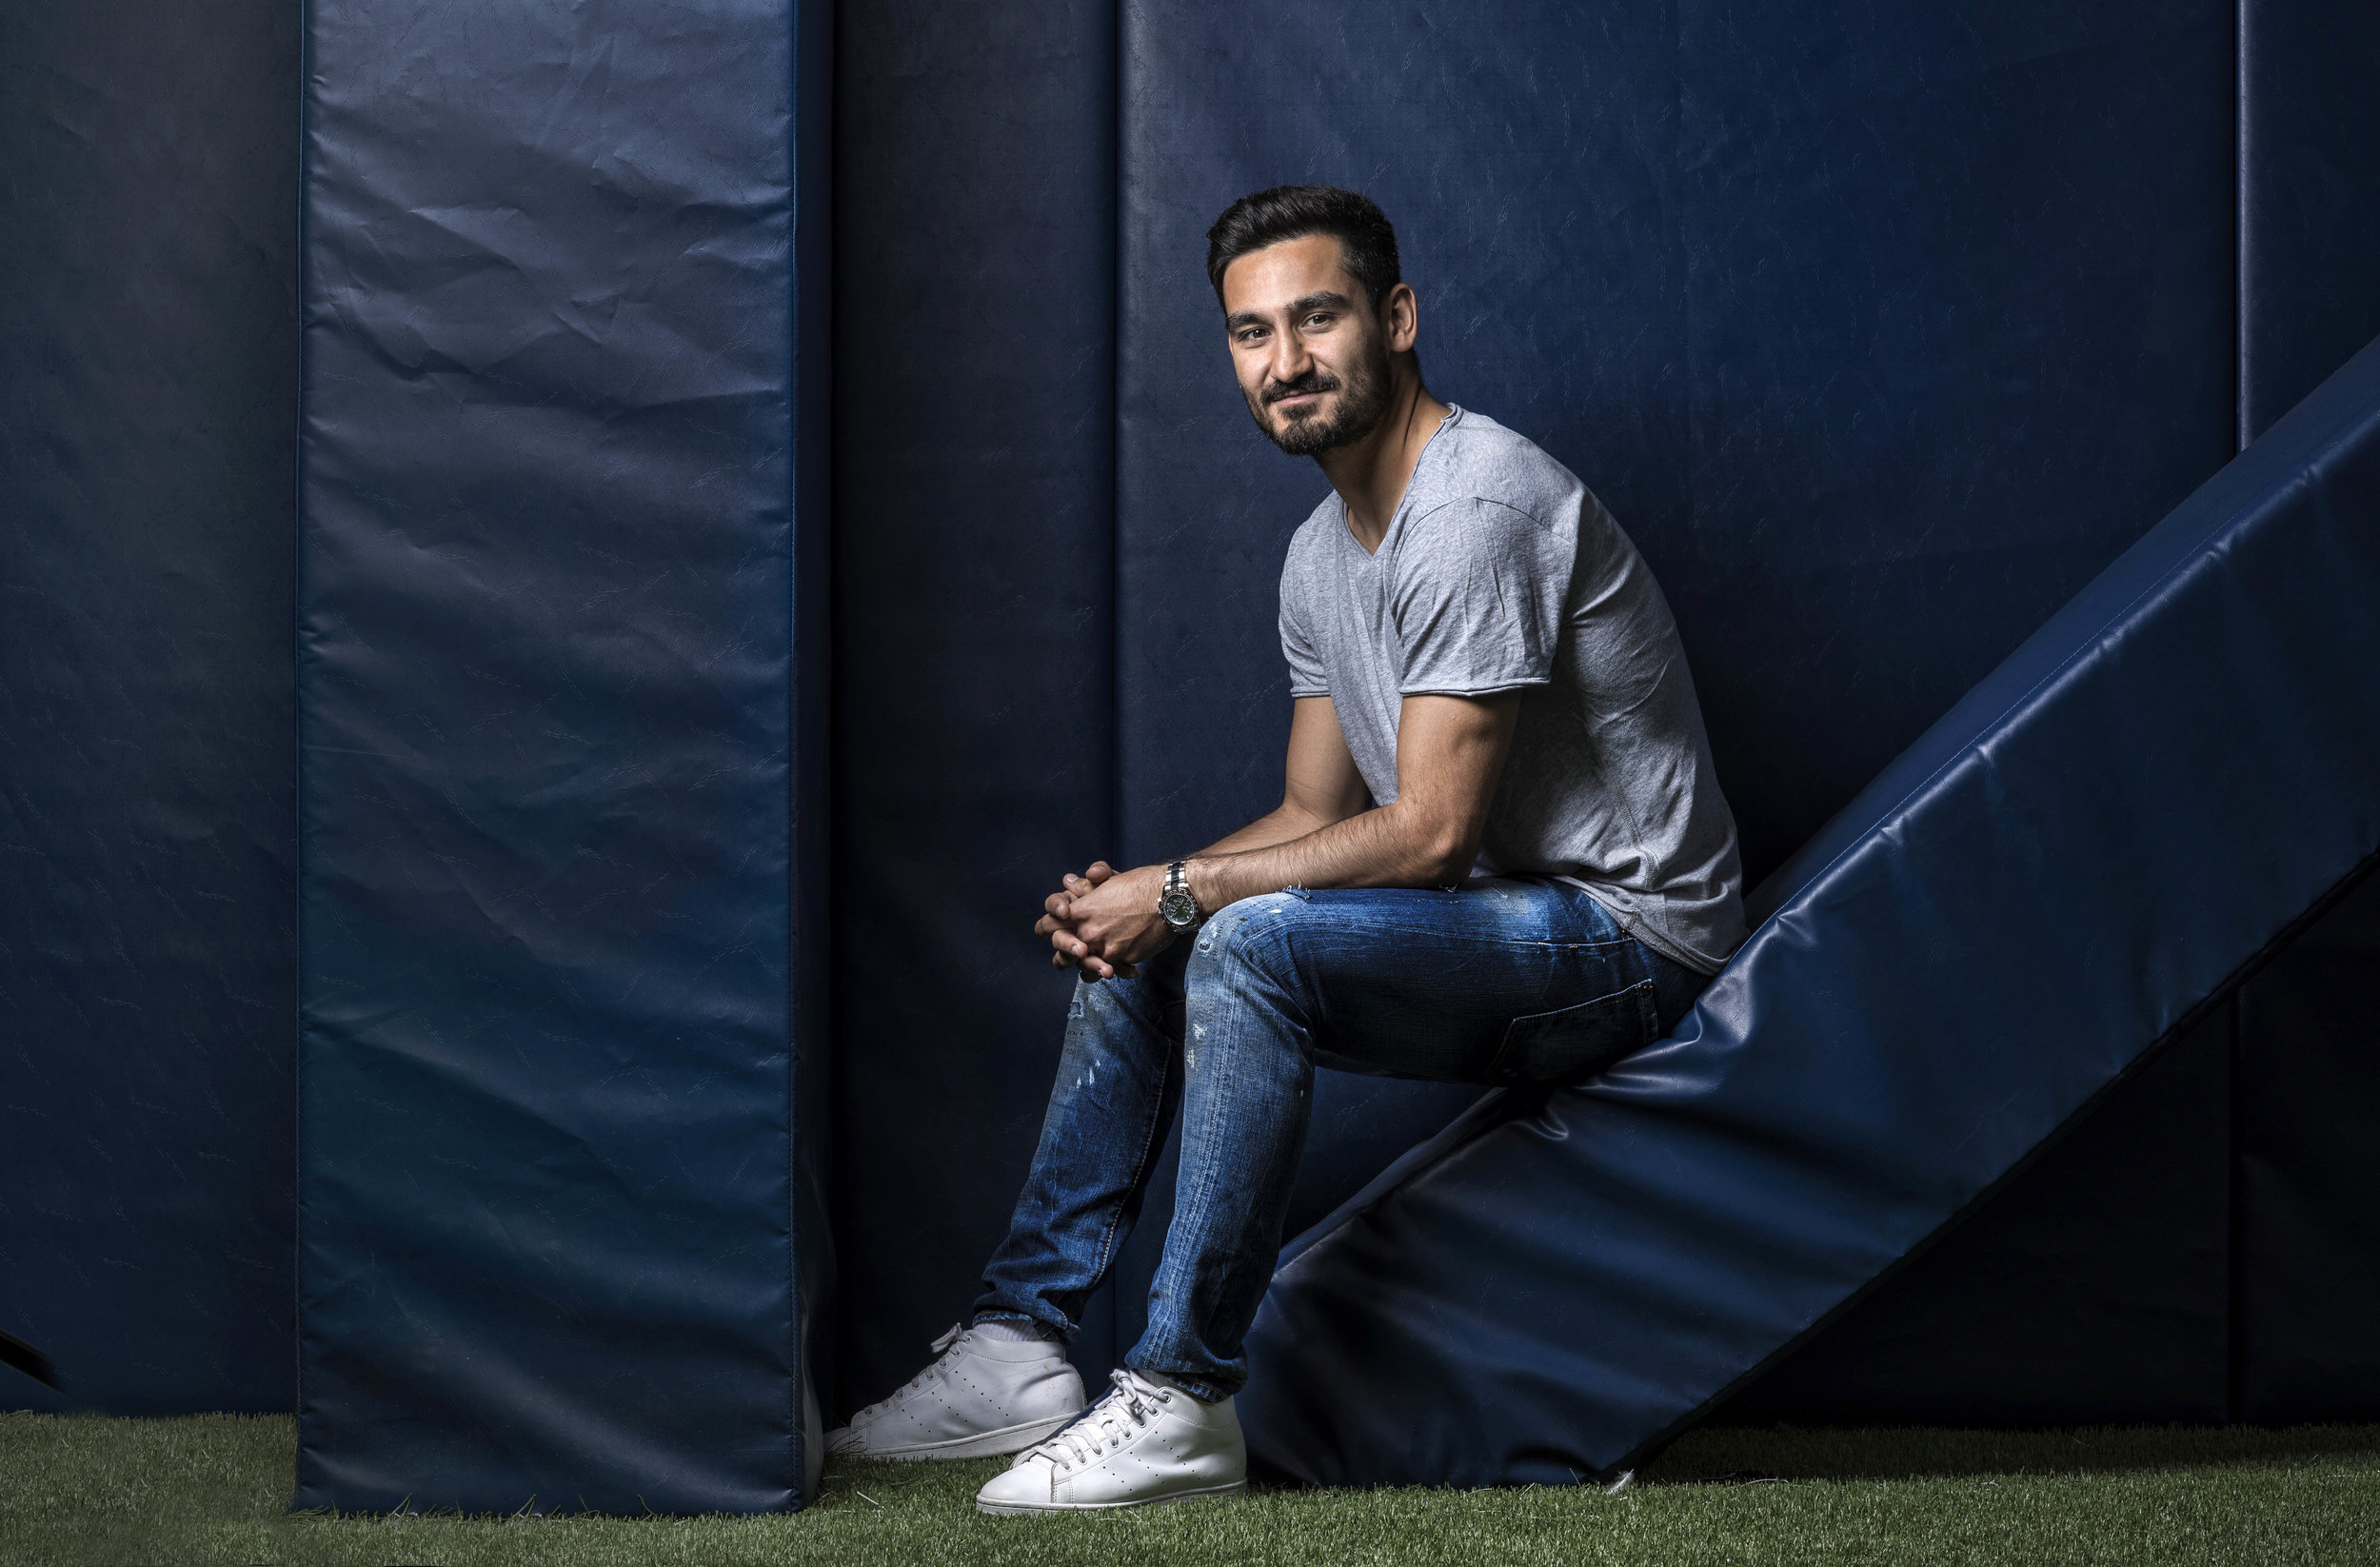 Man City's Ilkay Gundogan photo credit Paul Cooper